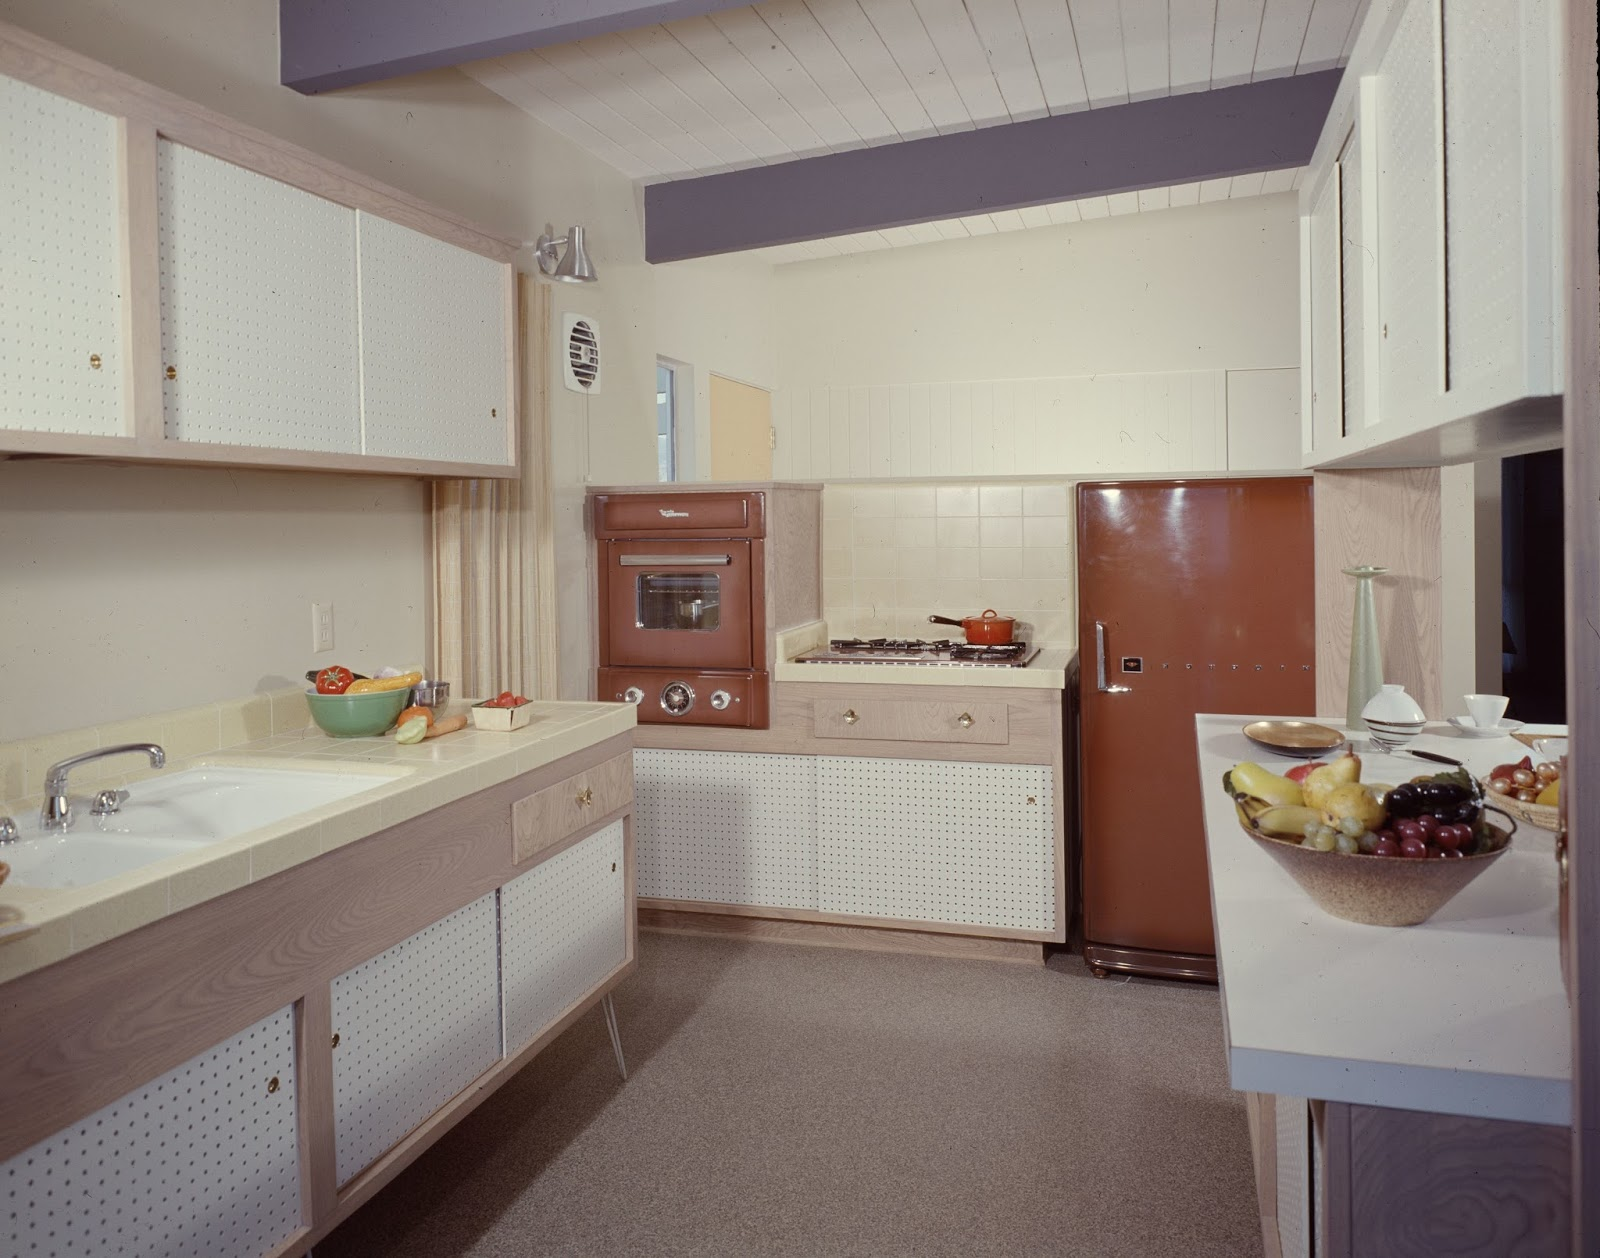 An original kitchen with pegboard cabinets held up by hairpin legs